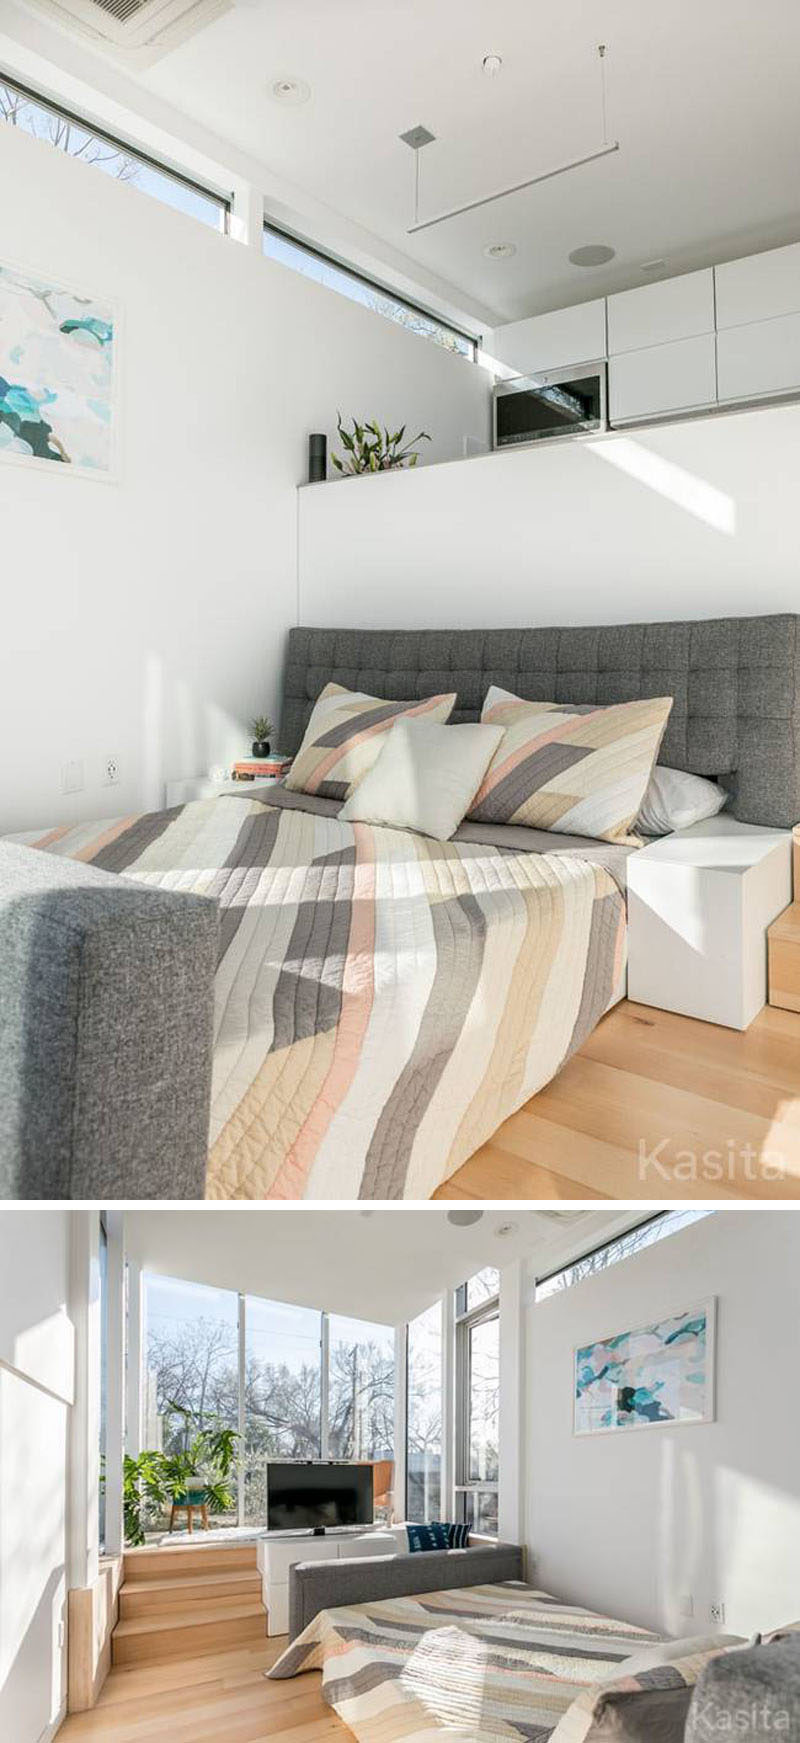 In this modern tiny house, the couch in the living room can be transformed into a queen-size bed by simply extending it out and part of the couch frame becomes bedside tables.